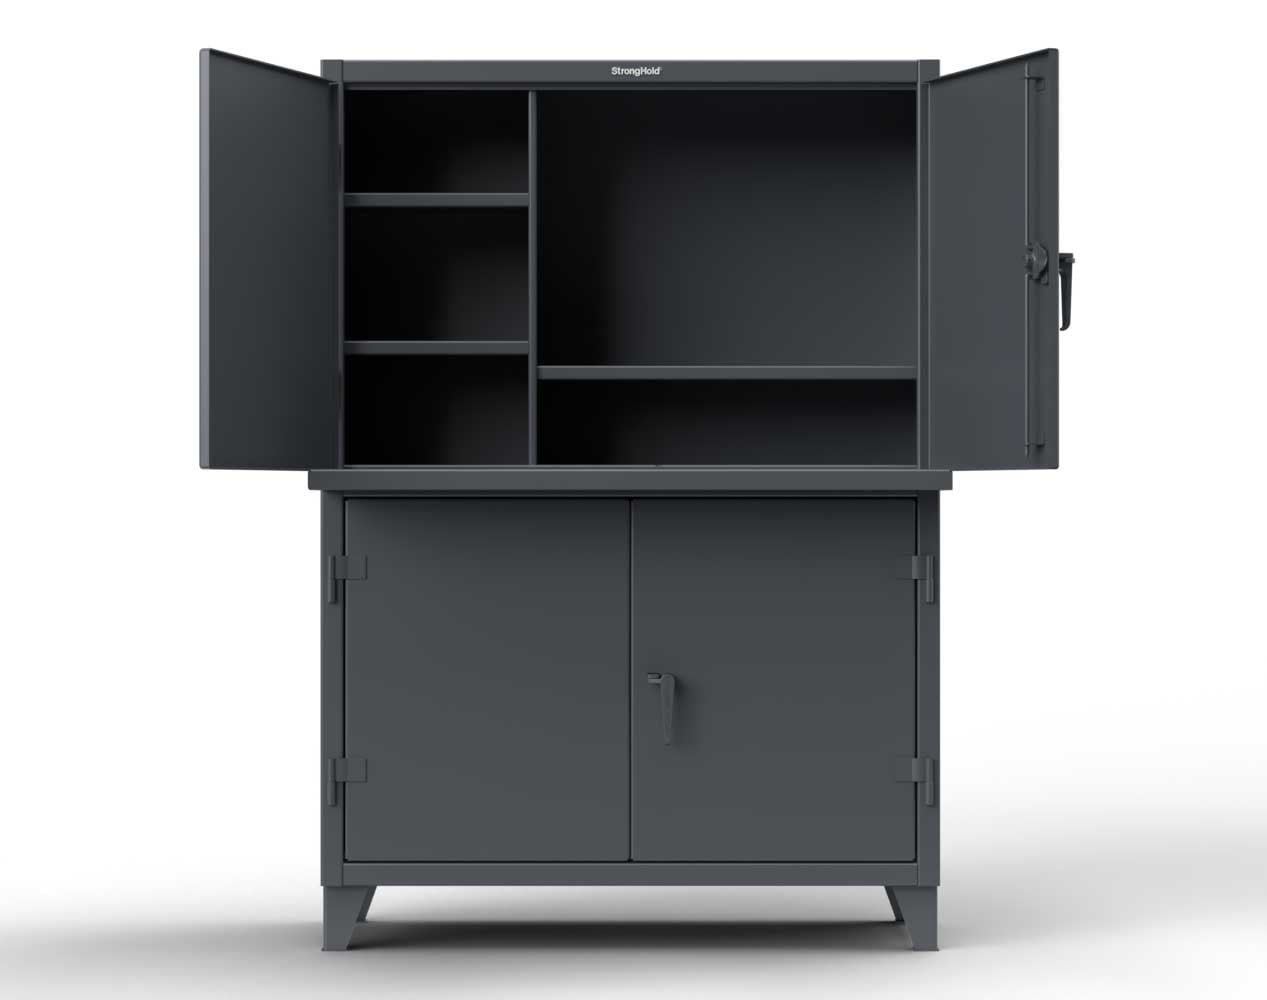 Extreme Duty 12 GA Multi-Compartment Computer Cabinet with 4 Shelves – 60 In. W x 24 In. D x 78 In. H